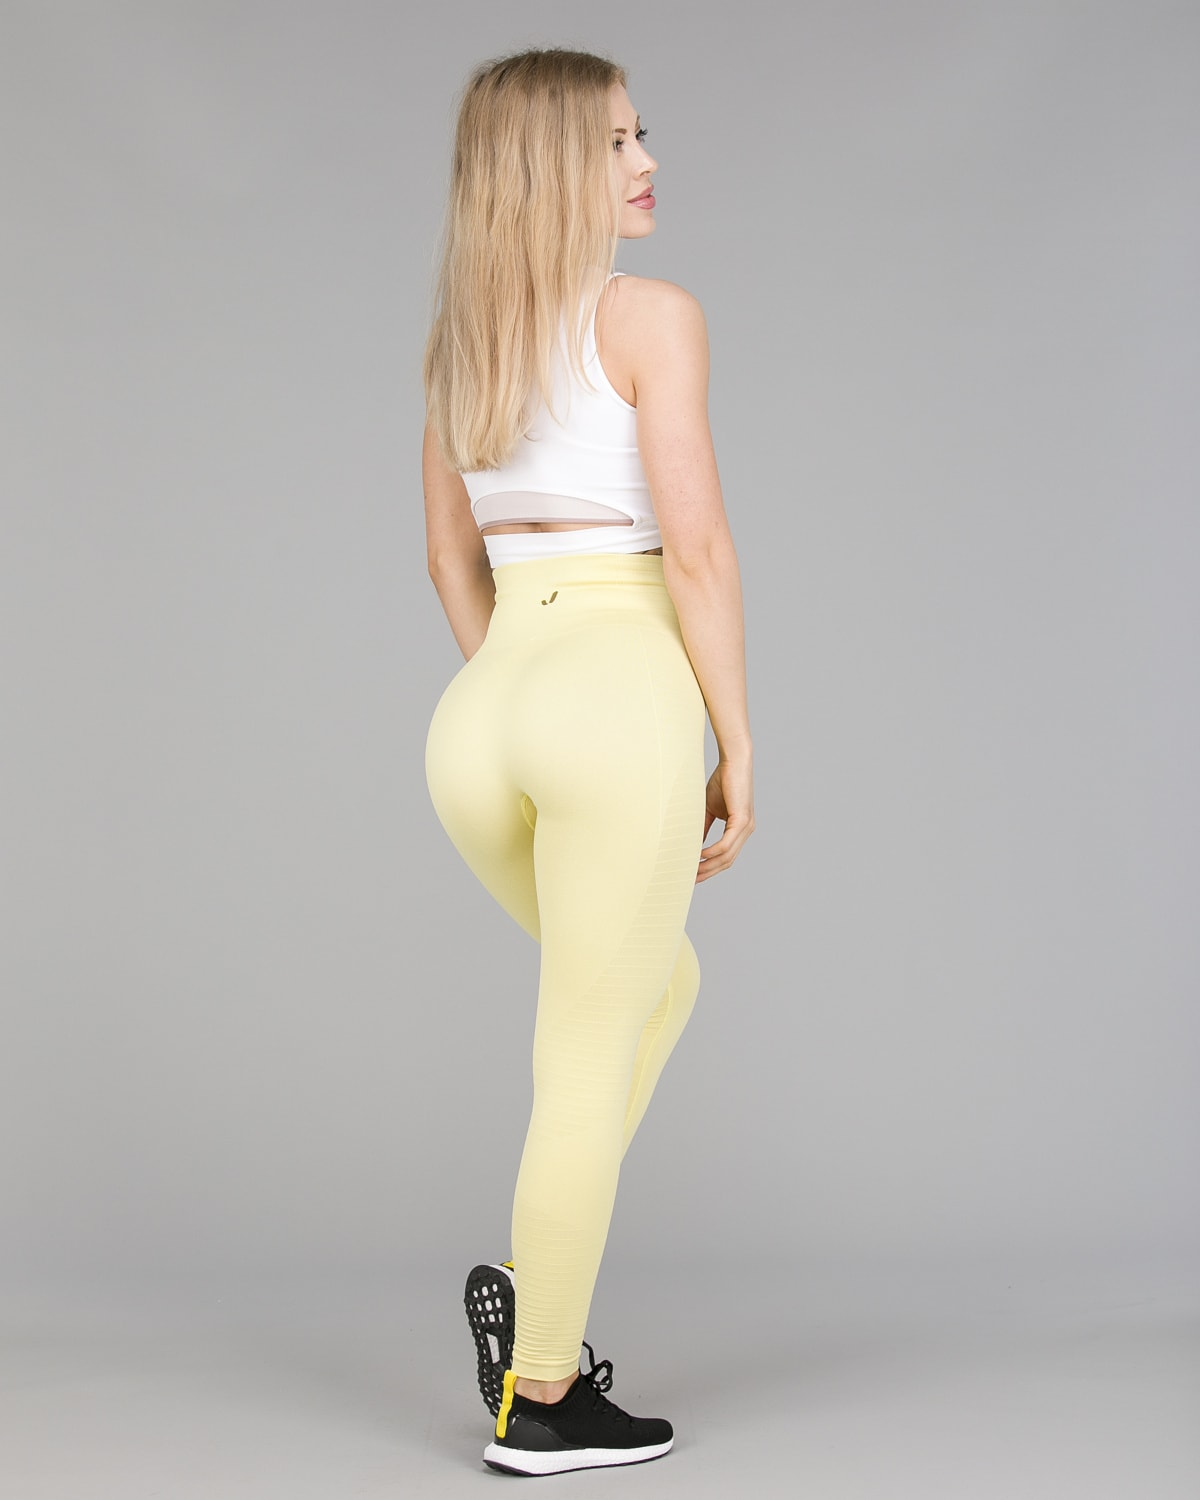 Jerf Gela 2.0 Tights Yellow Pastel6